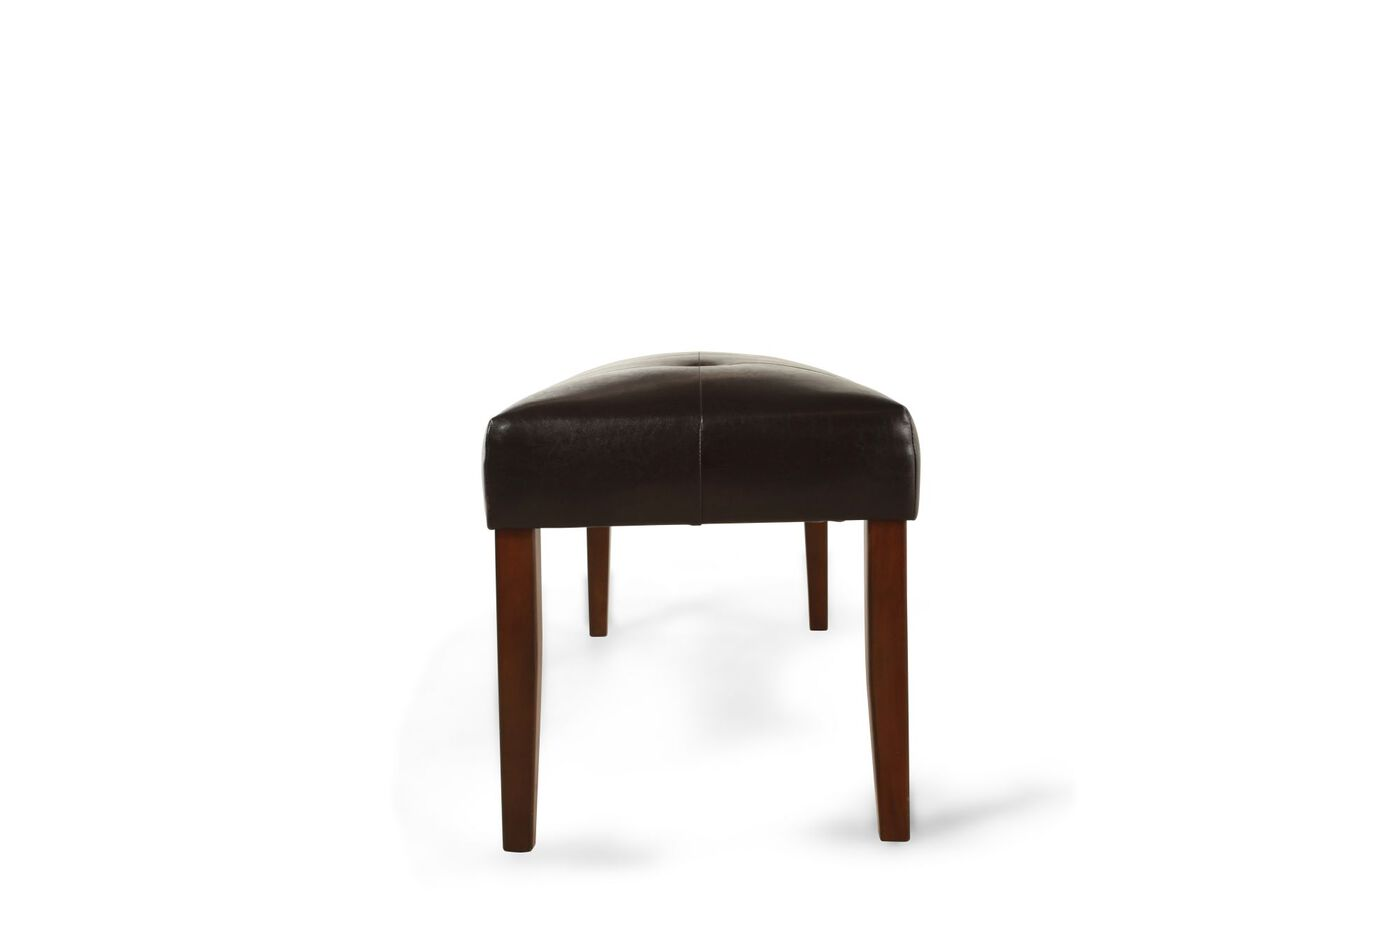 Tufted 47 39 39 Dining Bench In Brown Mathis Brothers Furniture